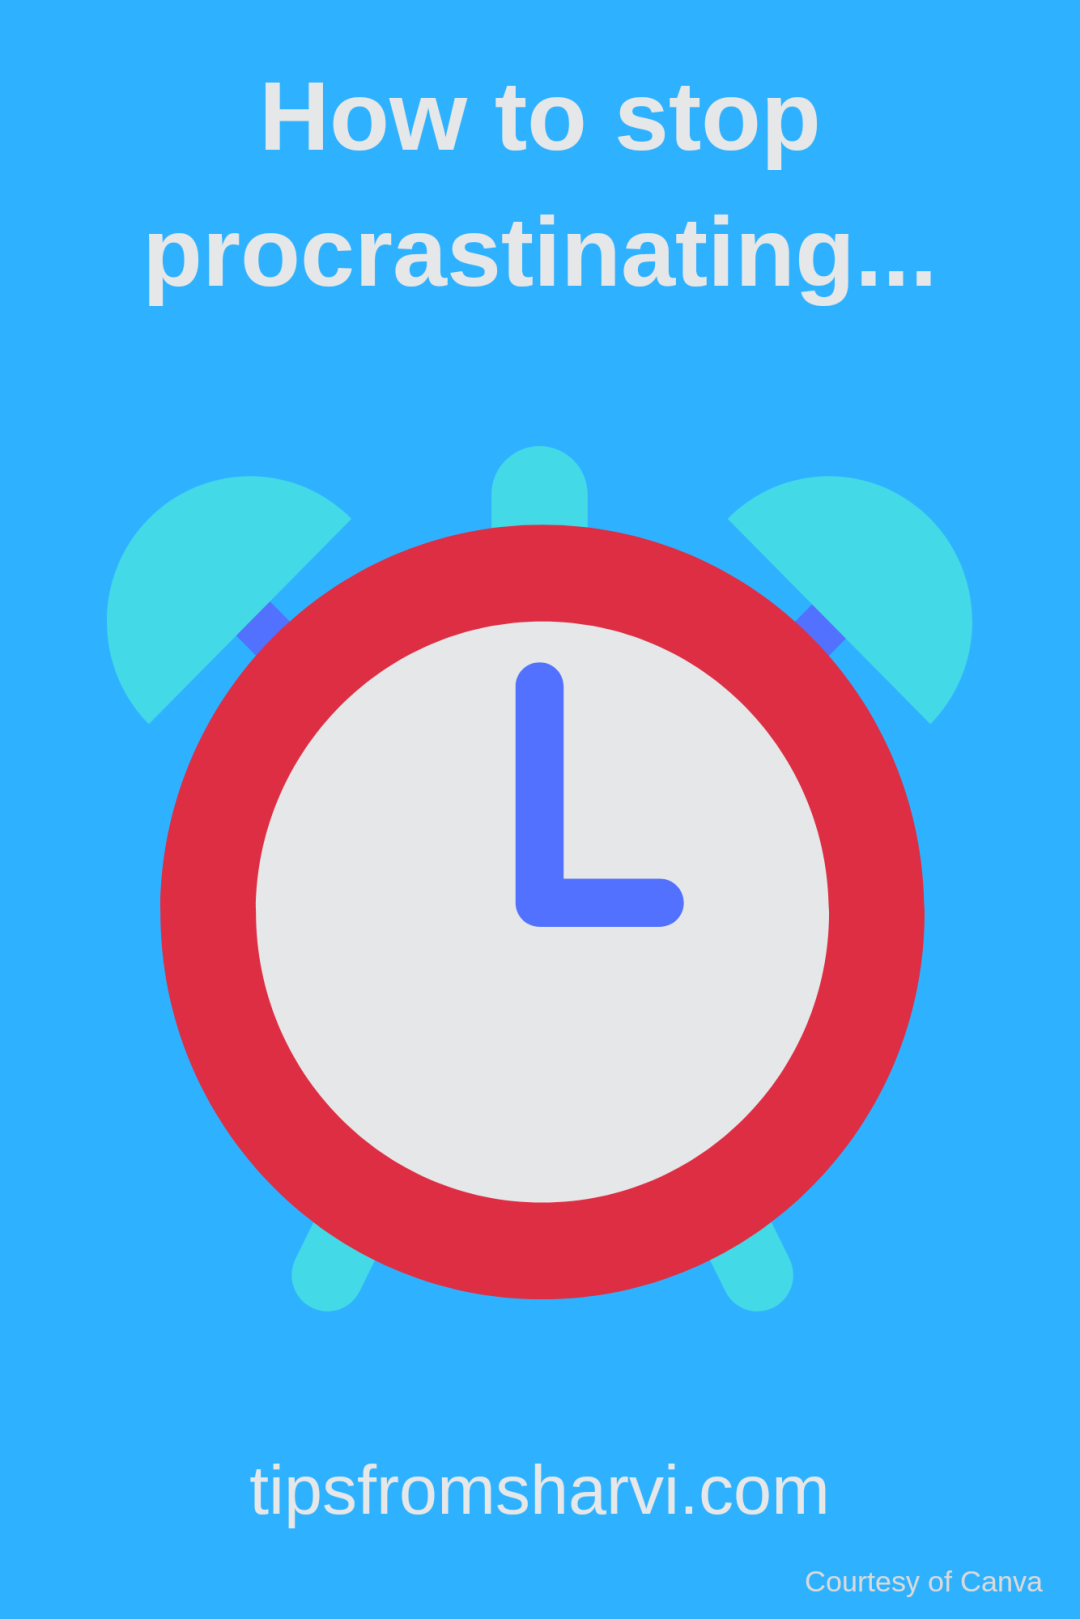 20 simple ways to stop procrastination, Tips from Sharvi.